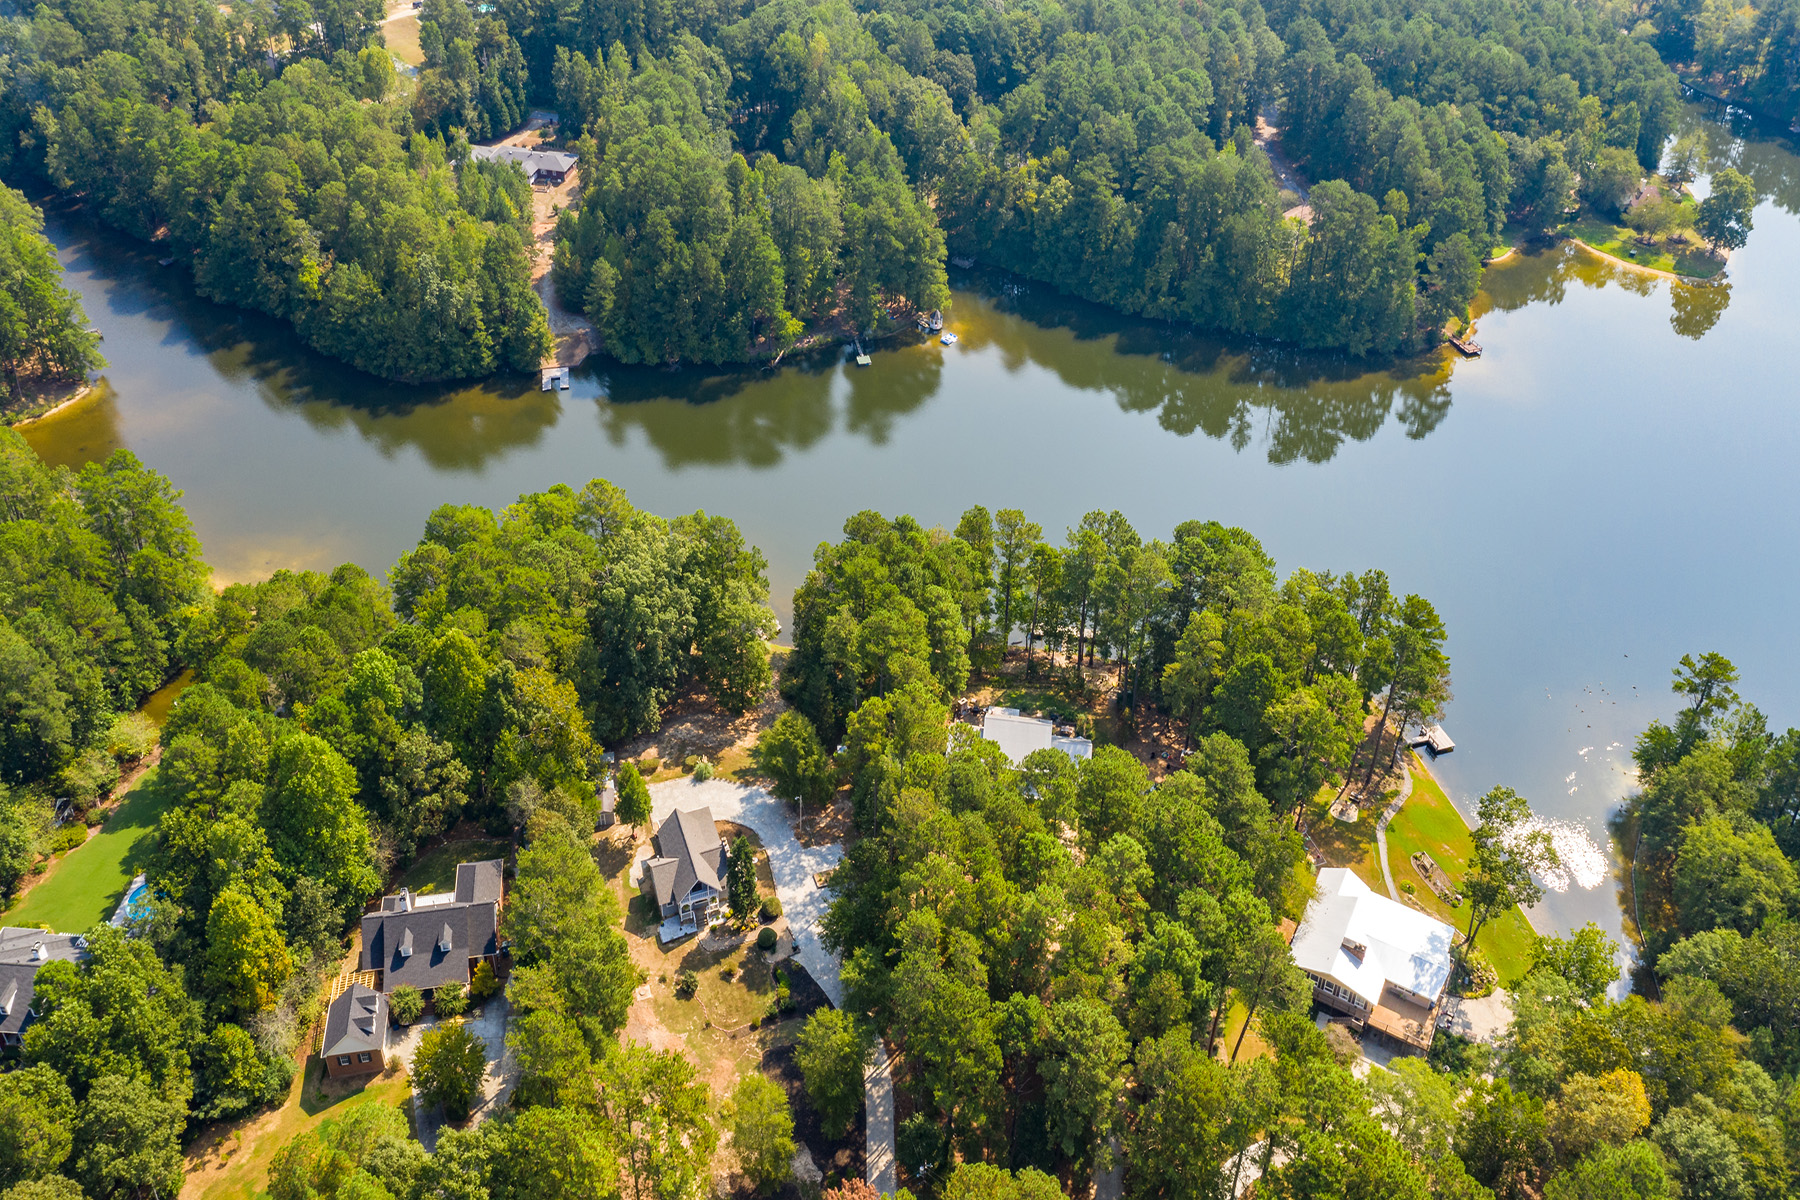 Single Family Homes for Active at Charming Lakeside Cottage 405 West Lake Dr Oxford, Georgia 30054 United States